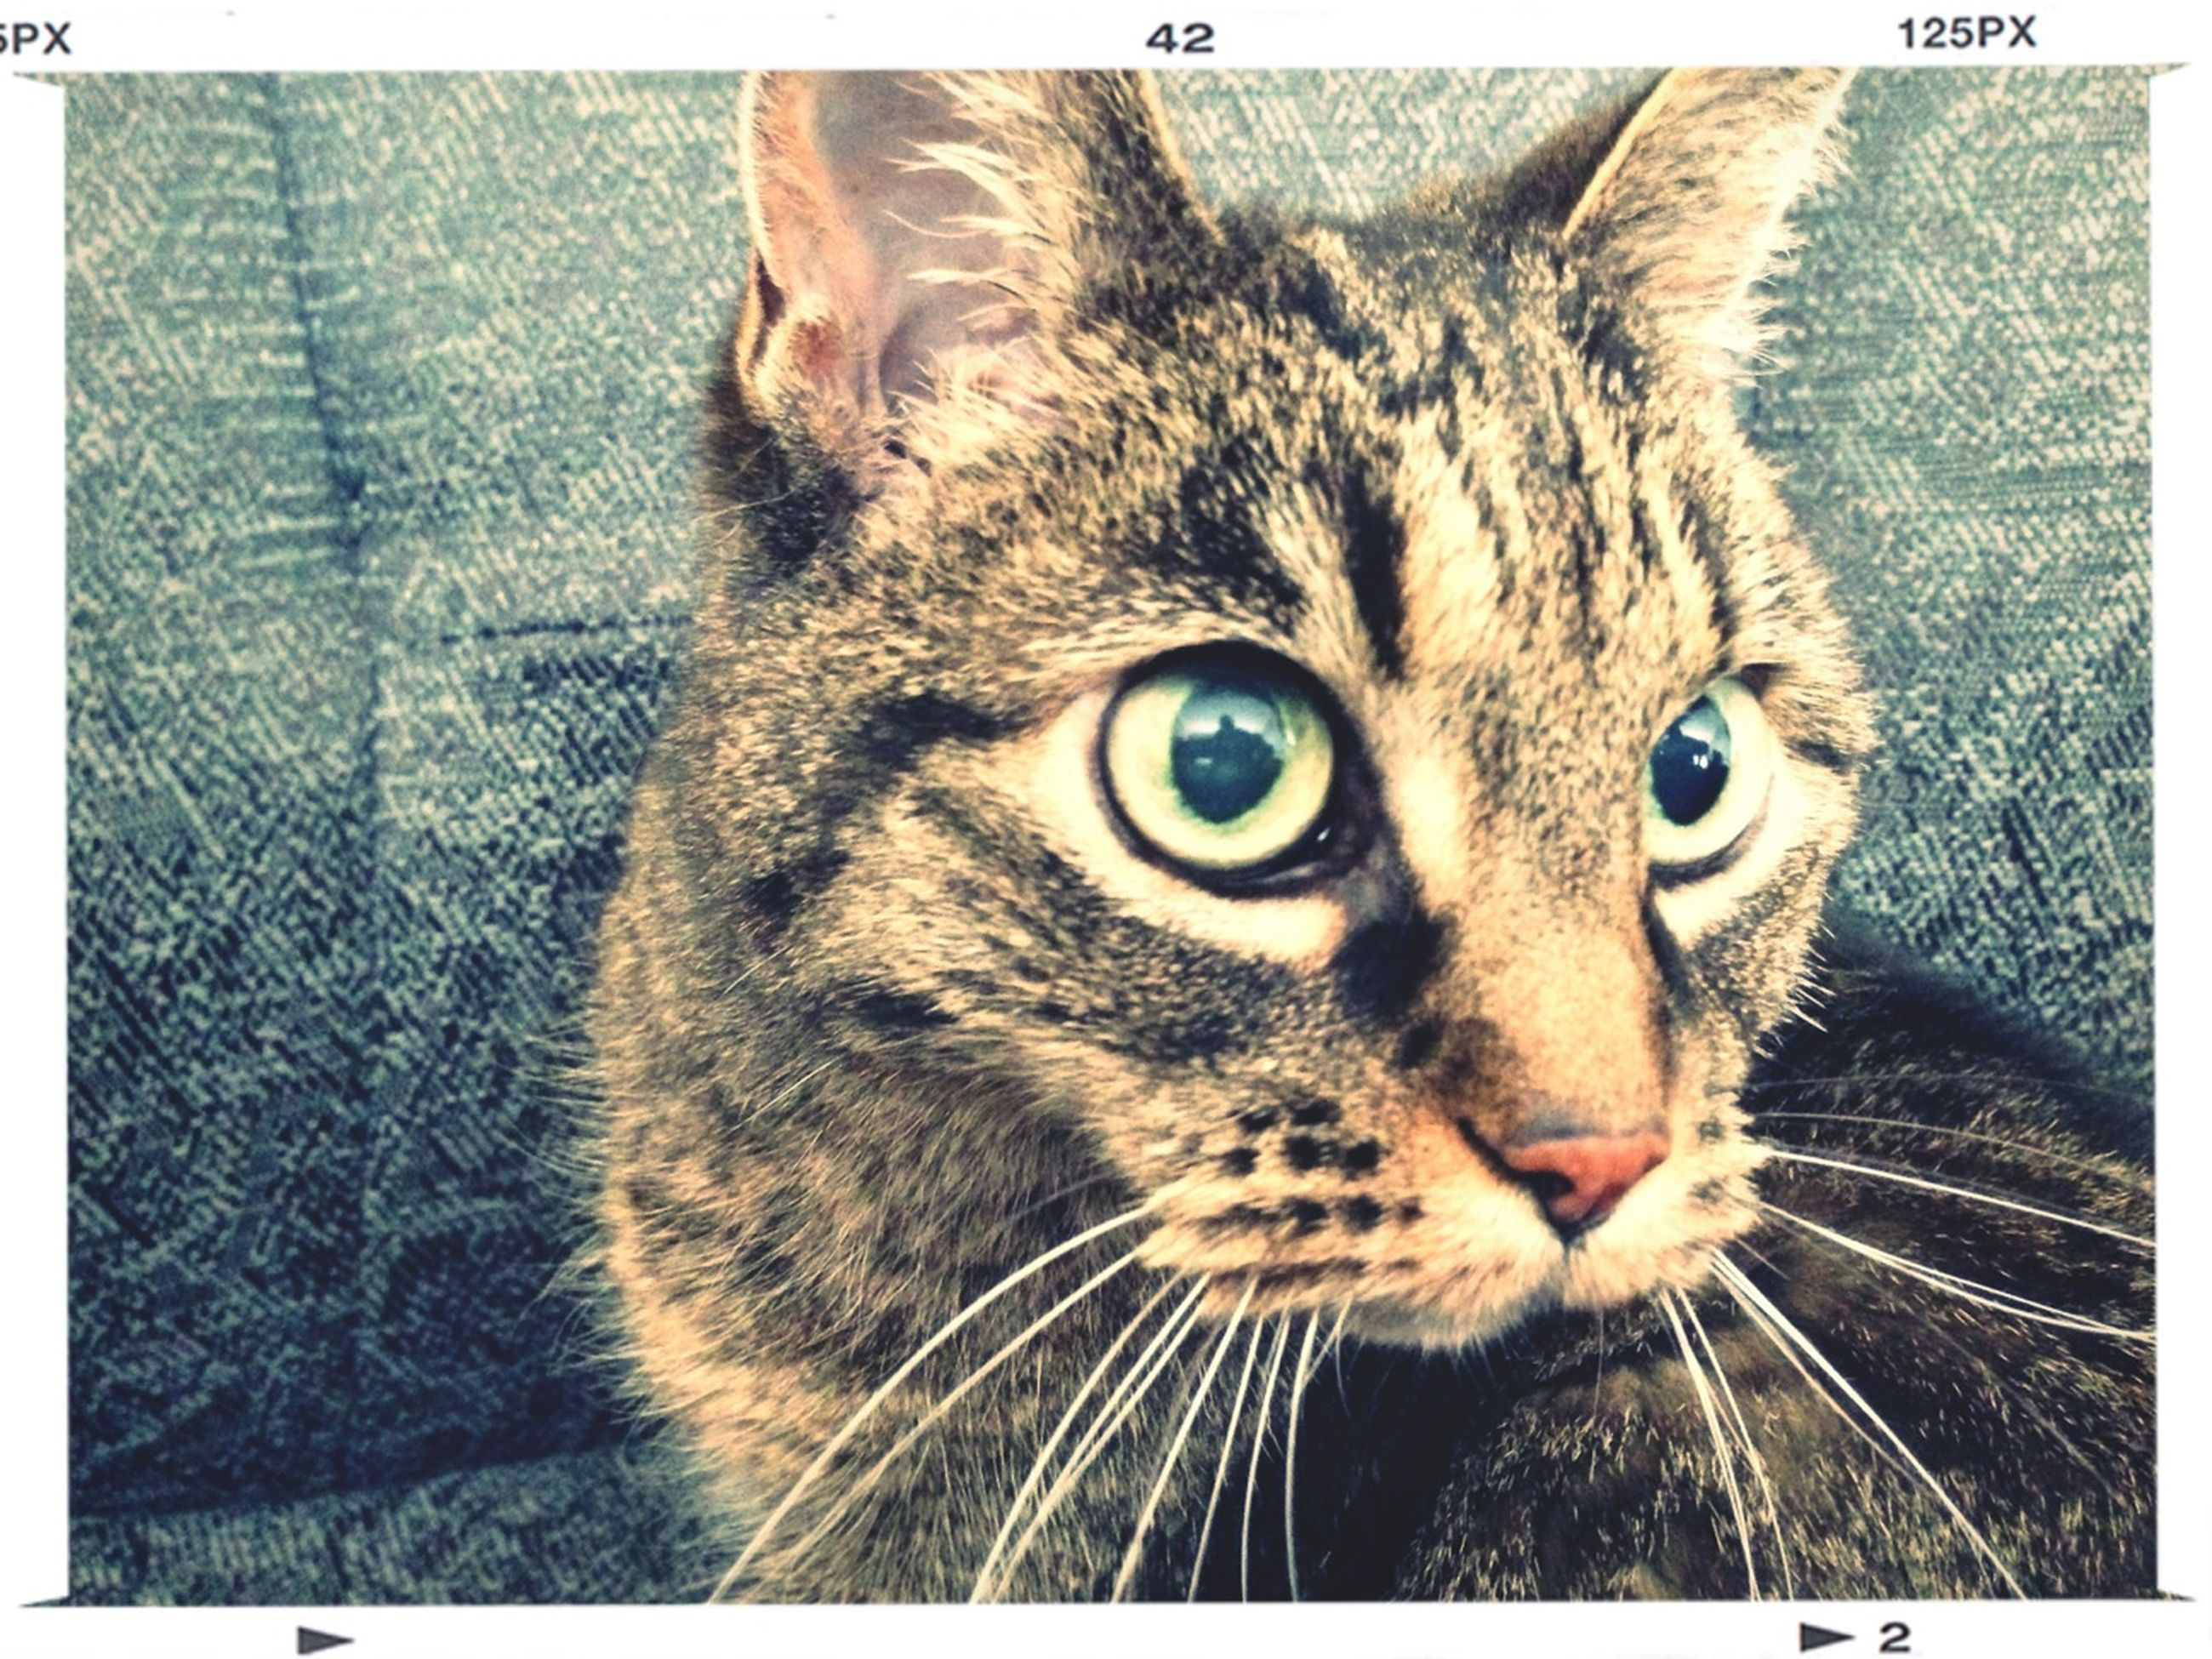 domestic cat, cat, pets, one animal, feline, animal themes, domestic animals, whisker, transfer print, mammal, portrait, looking at camera, auto post production filter, indoors, close-up, animal head, staring, animal eye, alertness, front view